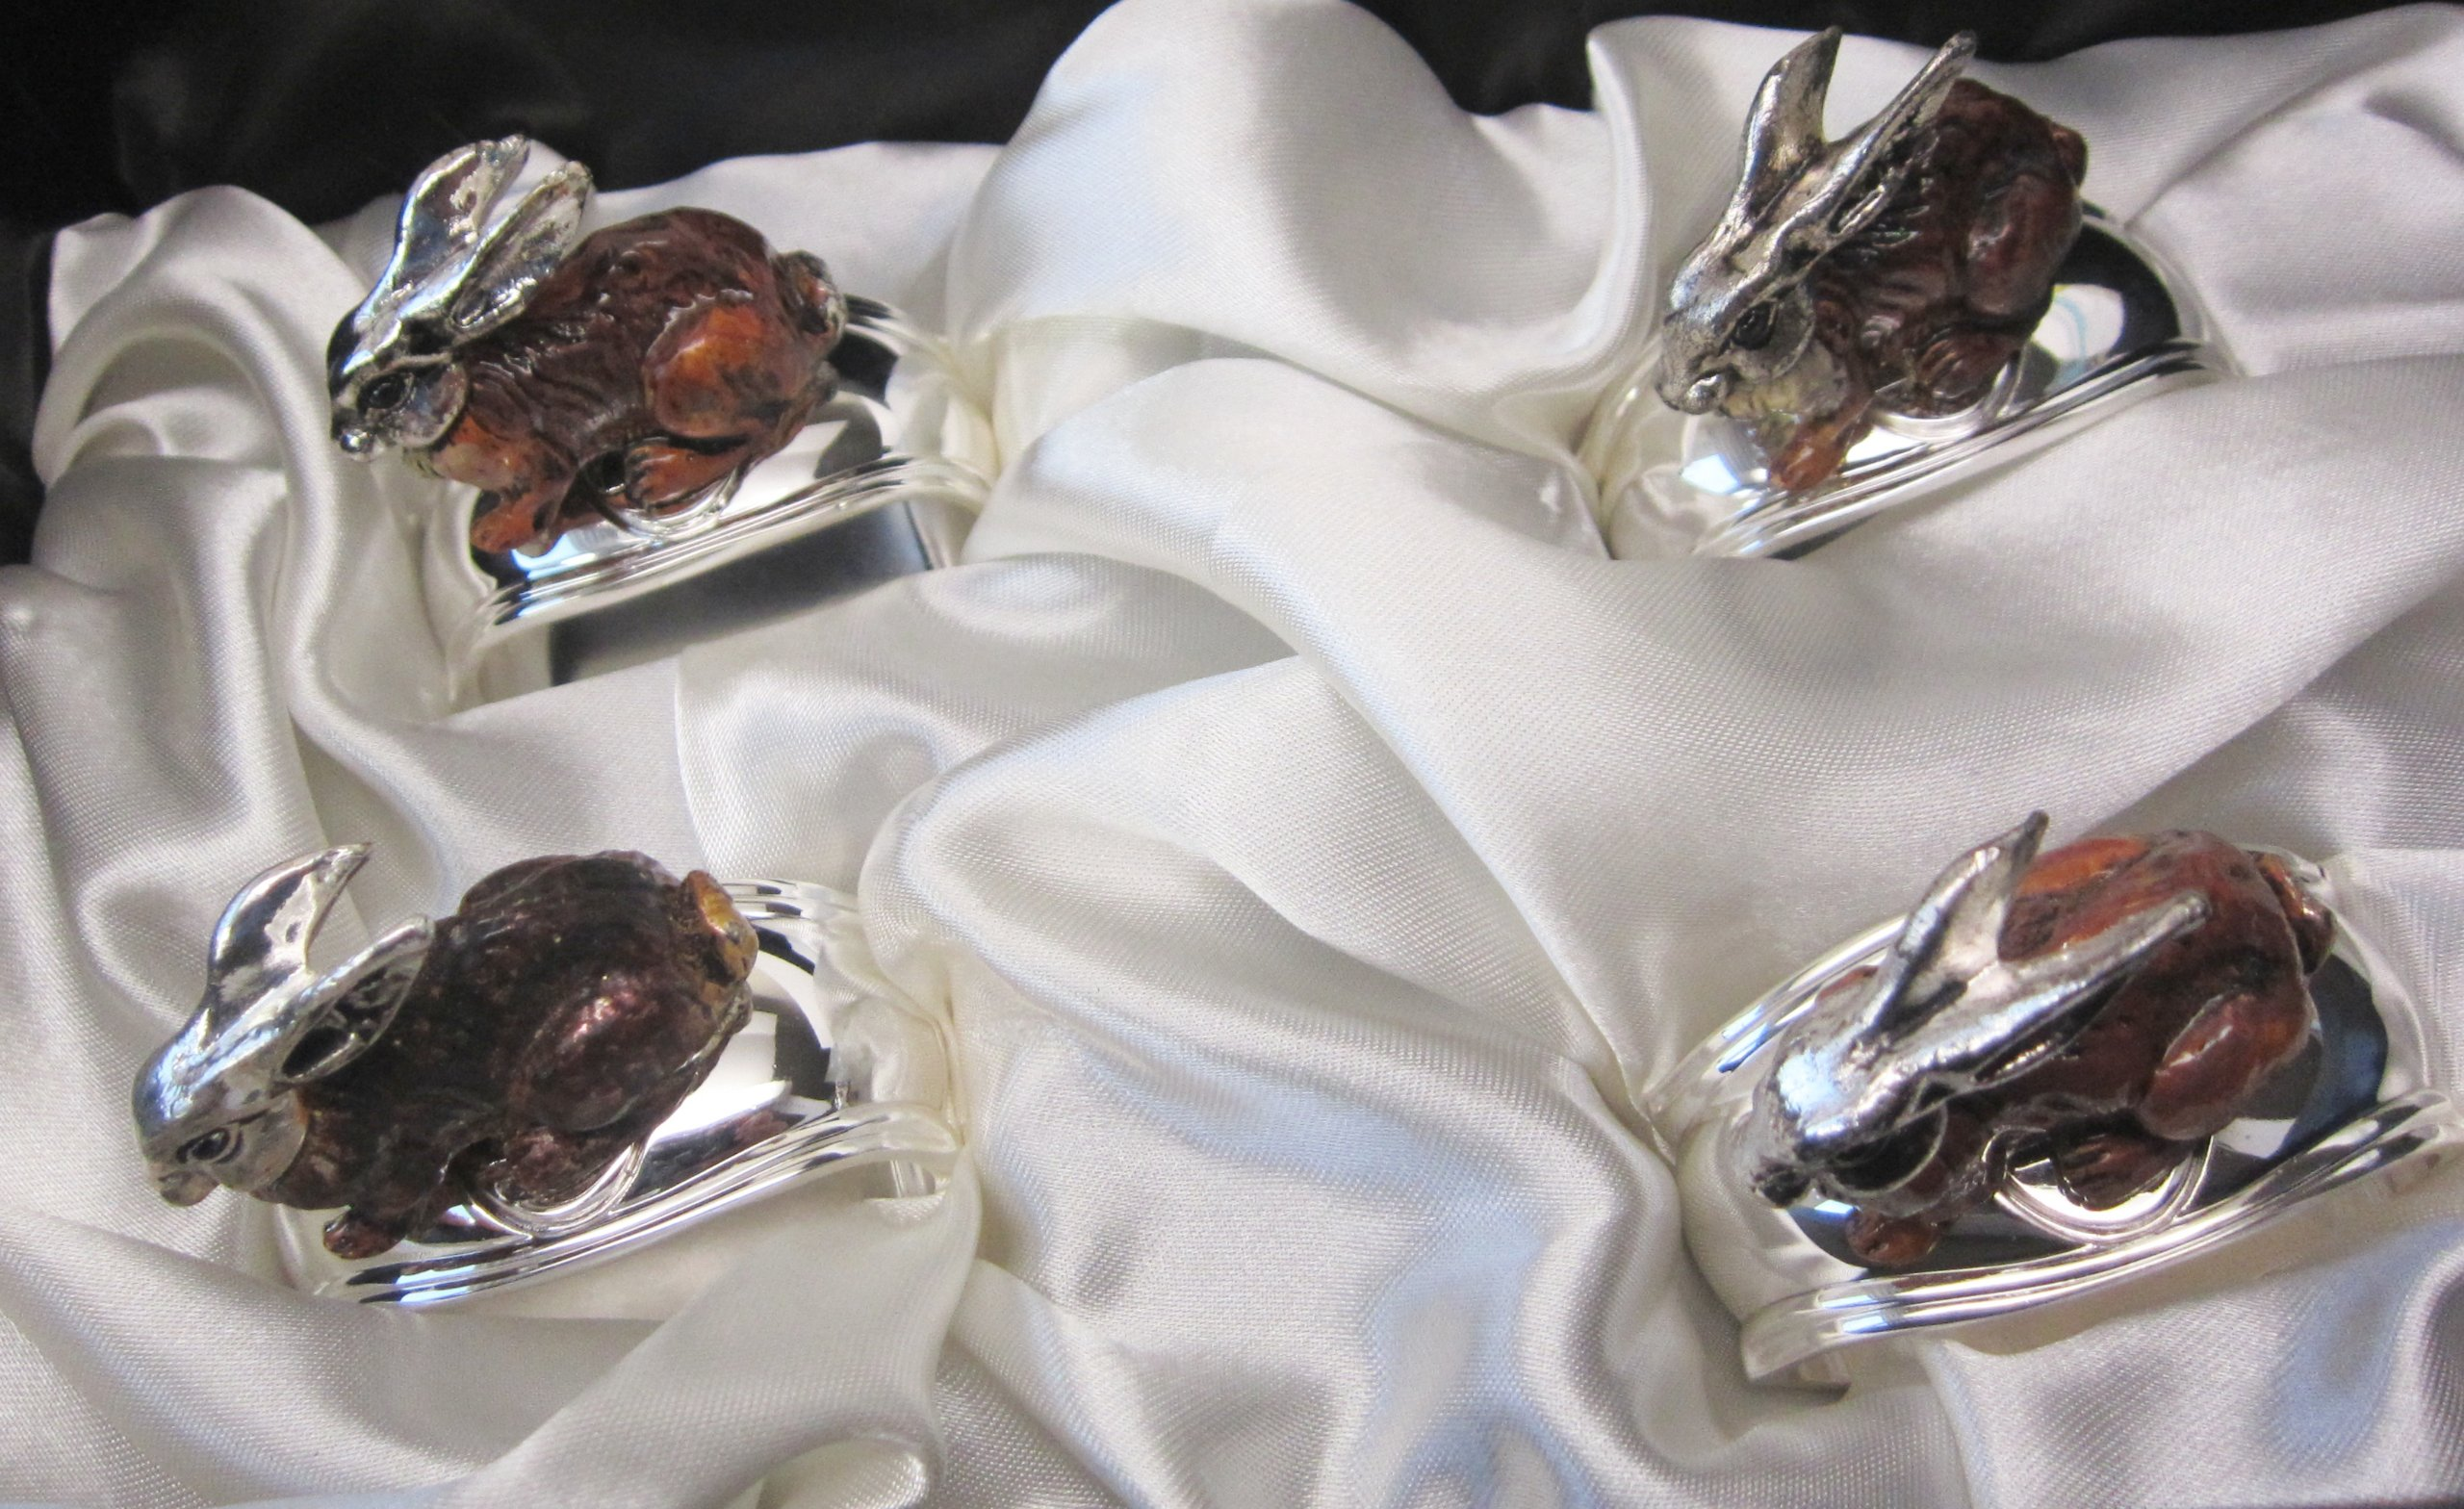 Hans Turnwald Set 4 Rabbit Bunny Signed Silverplate Figural Napkin Rings Easter Gift Box by Hans Turnwald (Image #5)